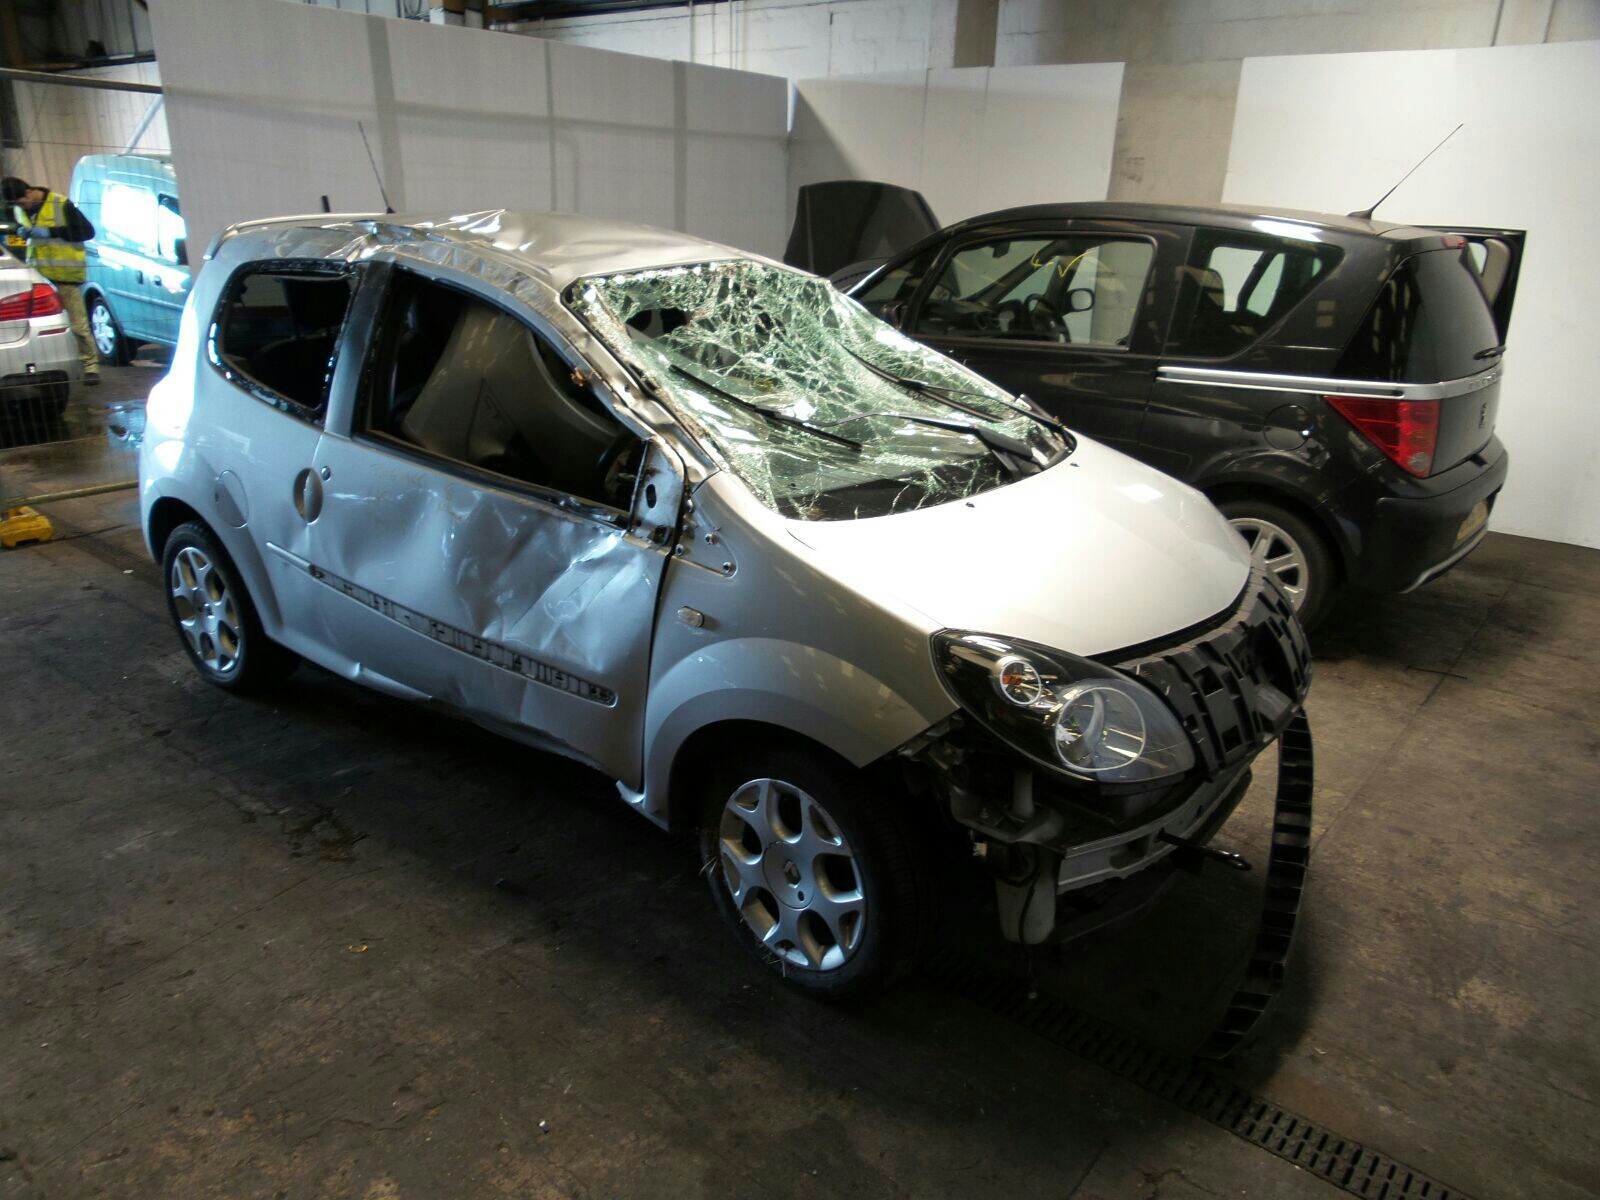 Image for a 2008 Renault Twingo 1.1 Petrol D4F780 Engine